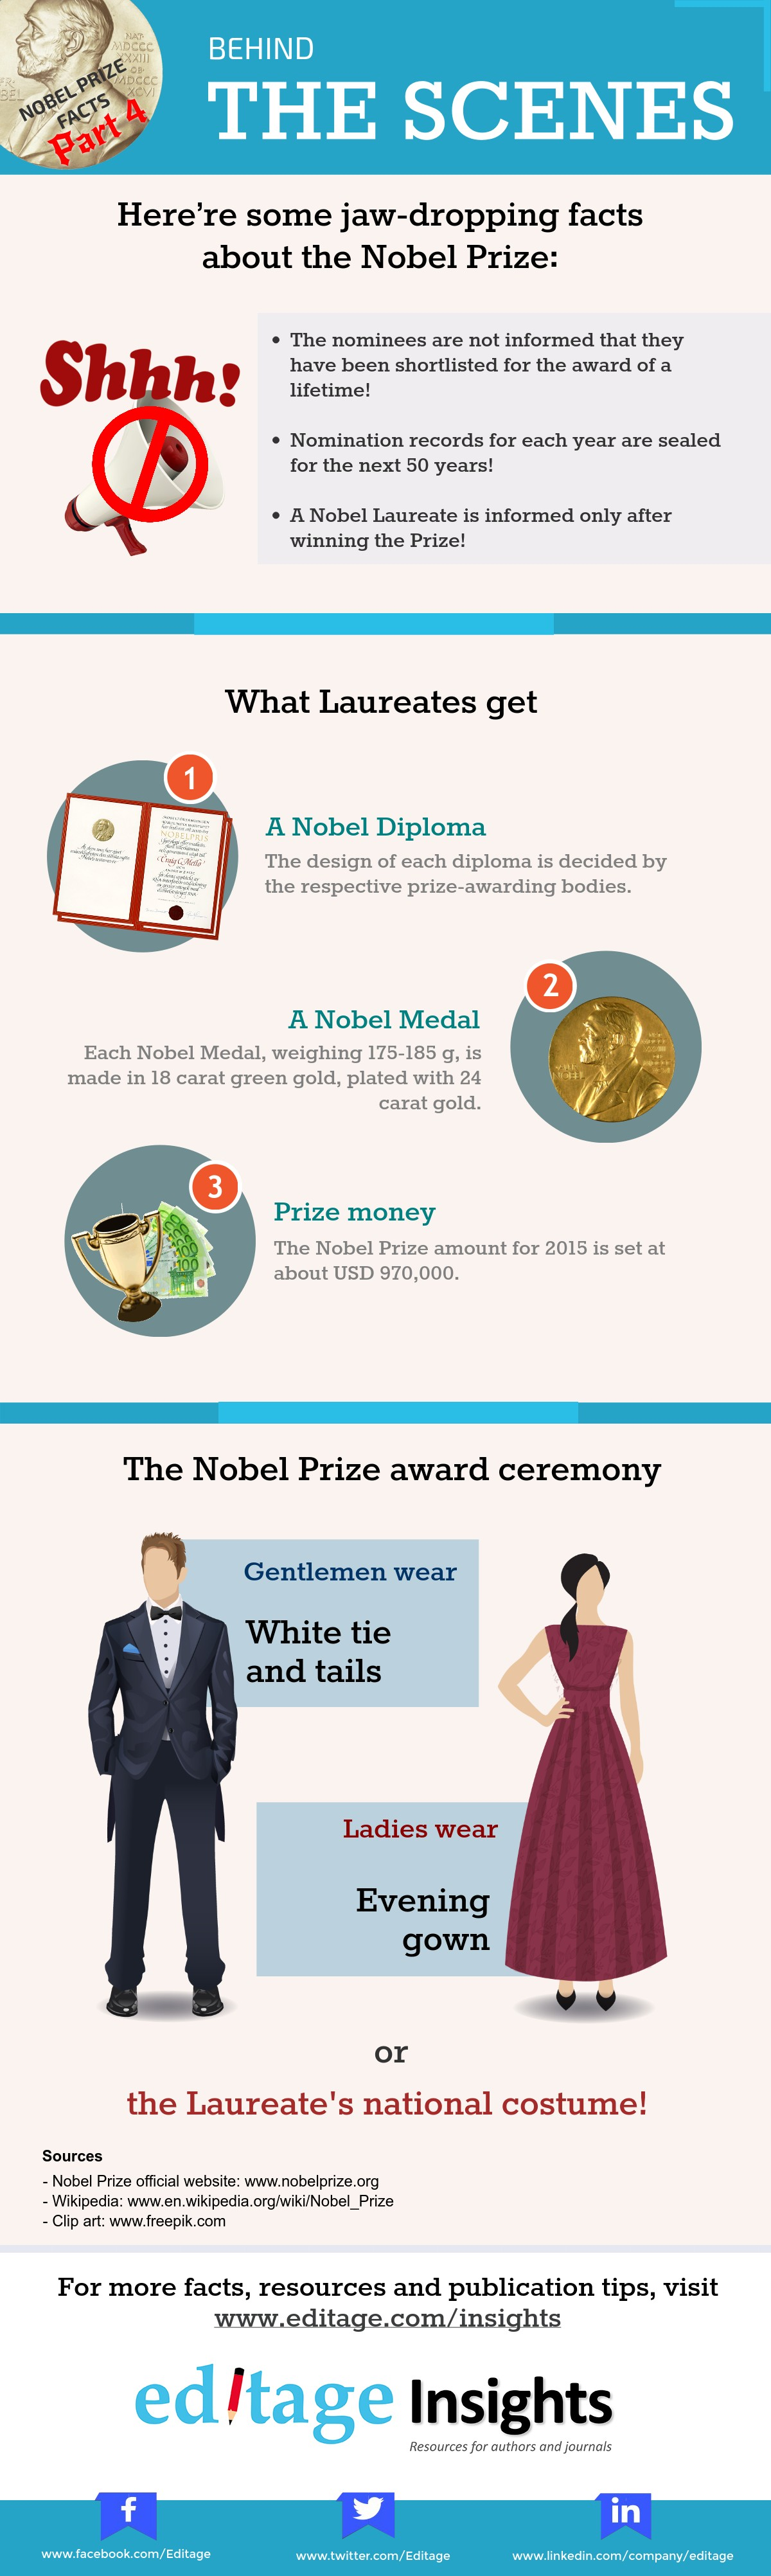 Details about Nobel Prize nominations, prize money, and award ceremony